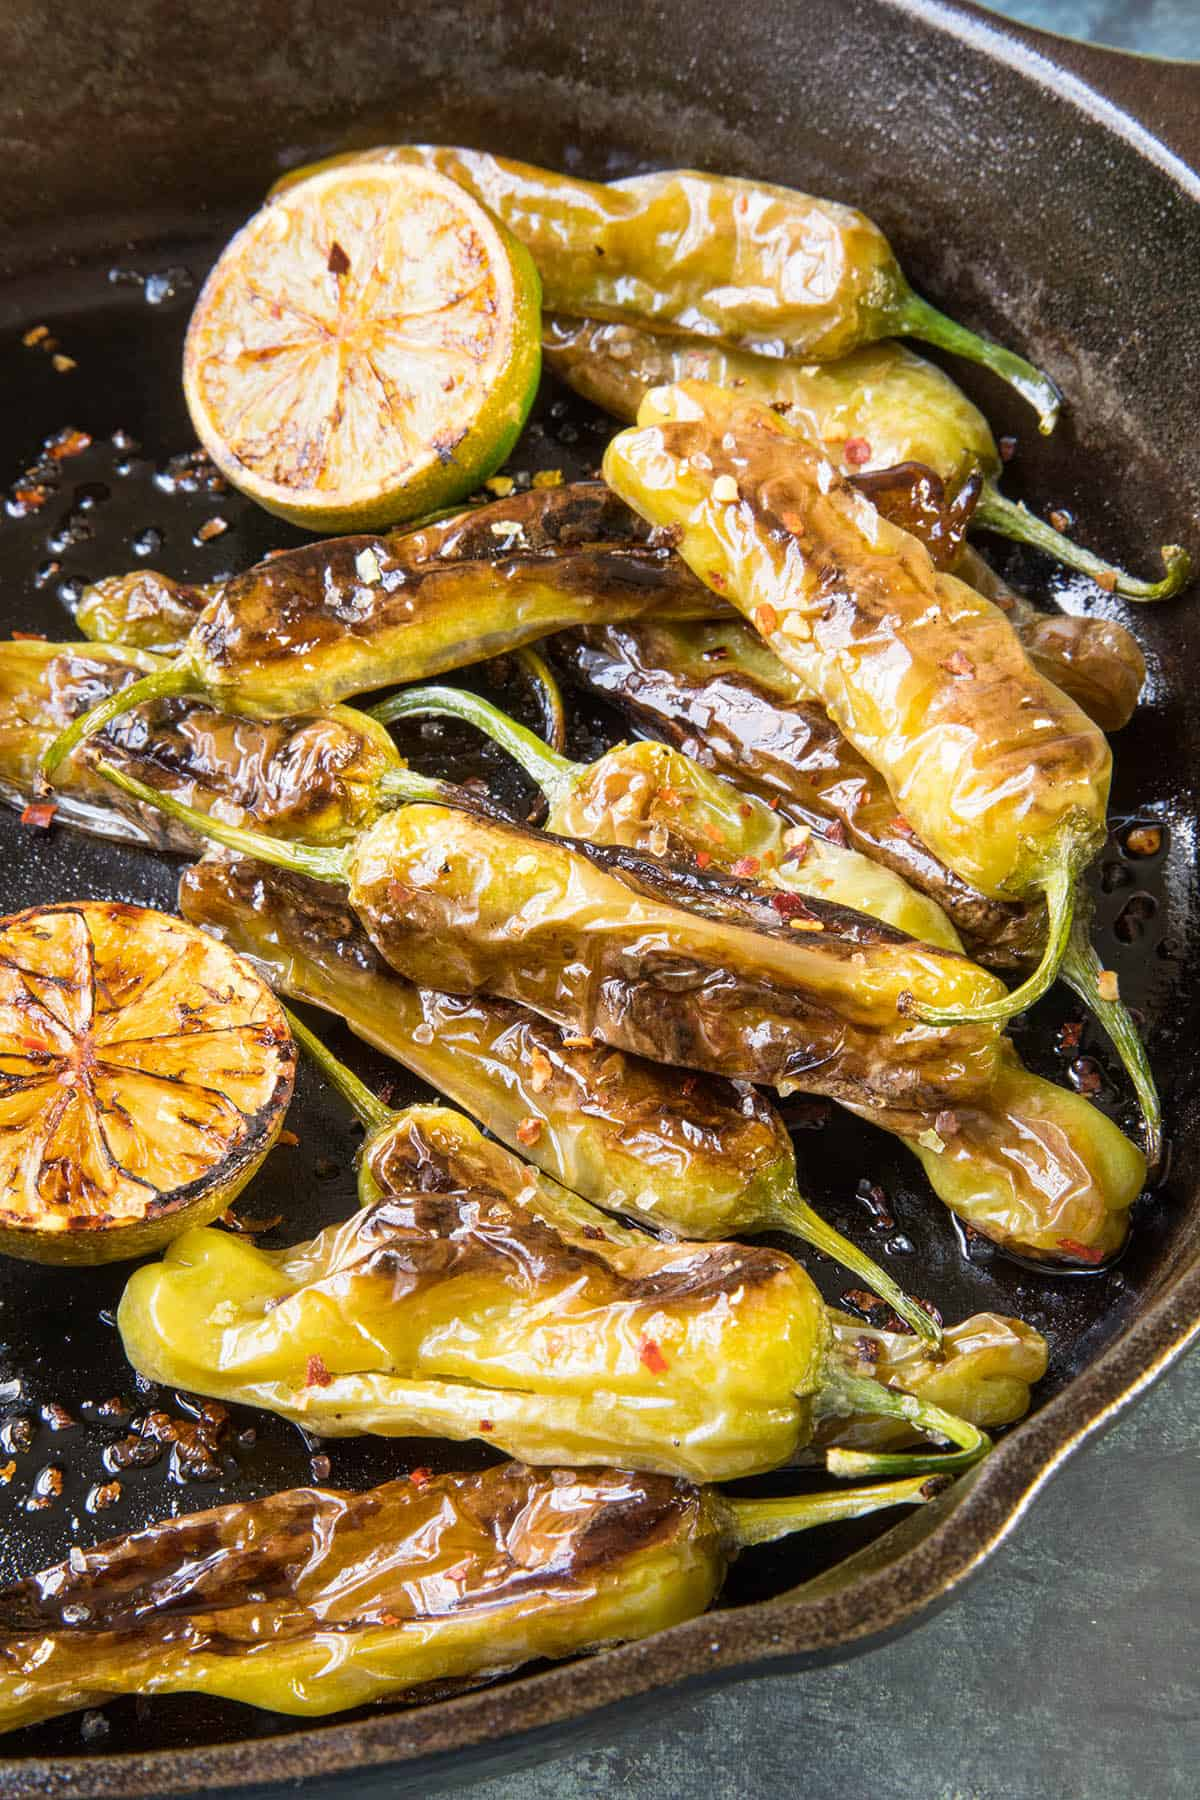 Blistered Shishito Peppers with Flaky Sea Salt and Lime